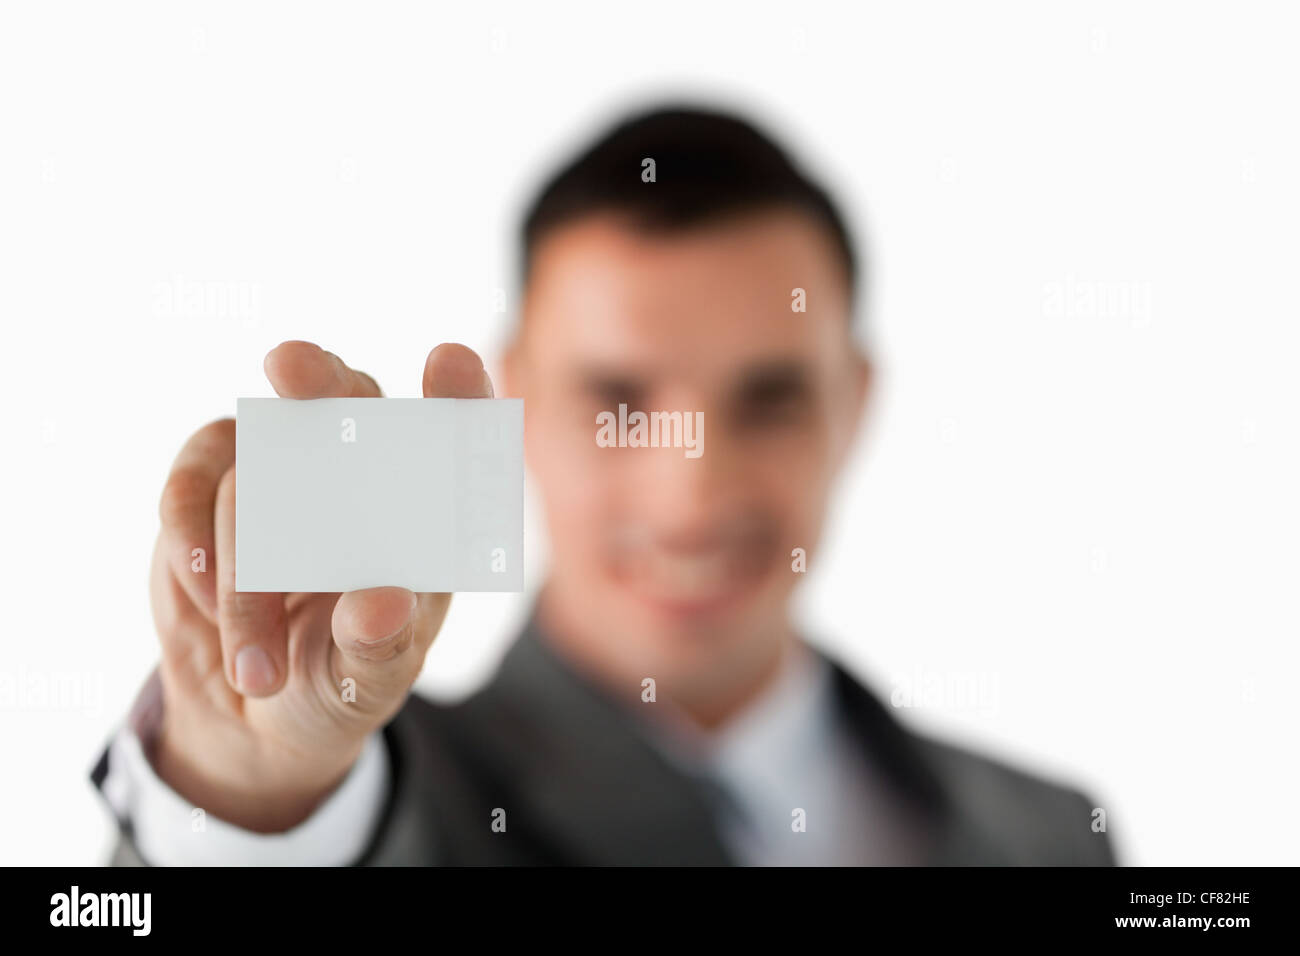 Close up of business card being shown by businessman - Stock Image